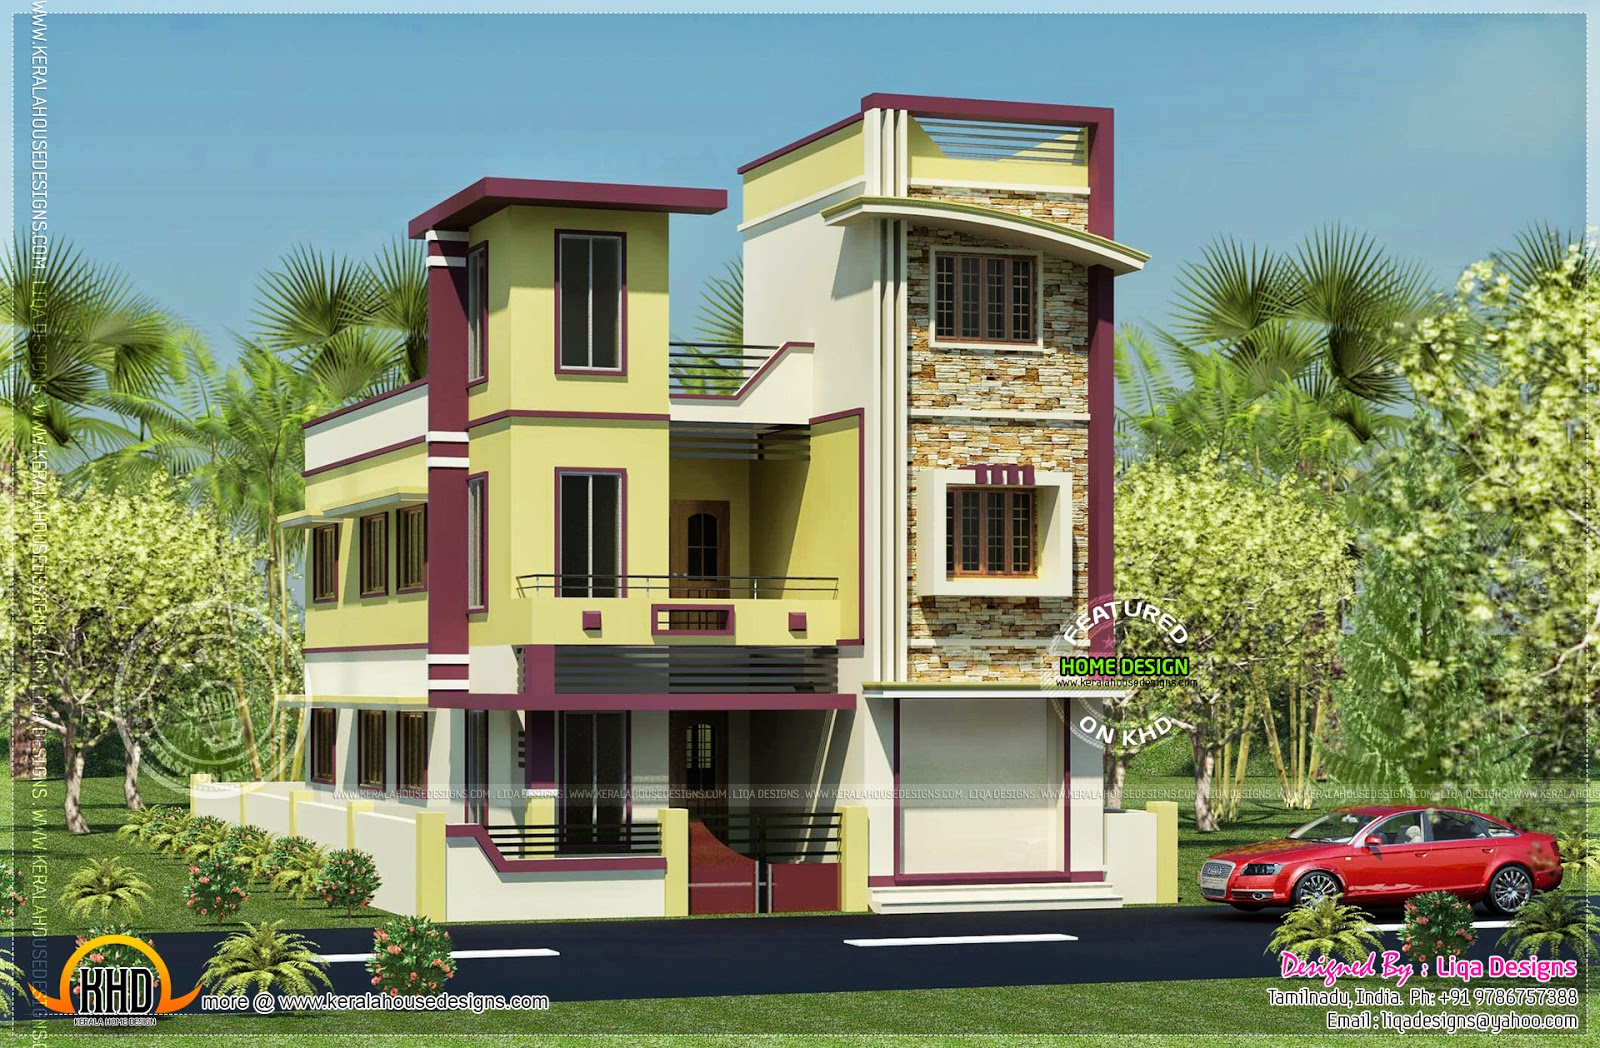 2470 sq ft 3 storied tamilnadu house rendering kerala for South indian small house designs